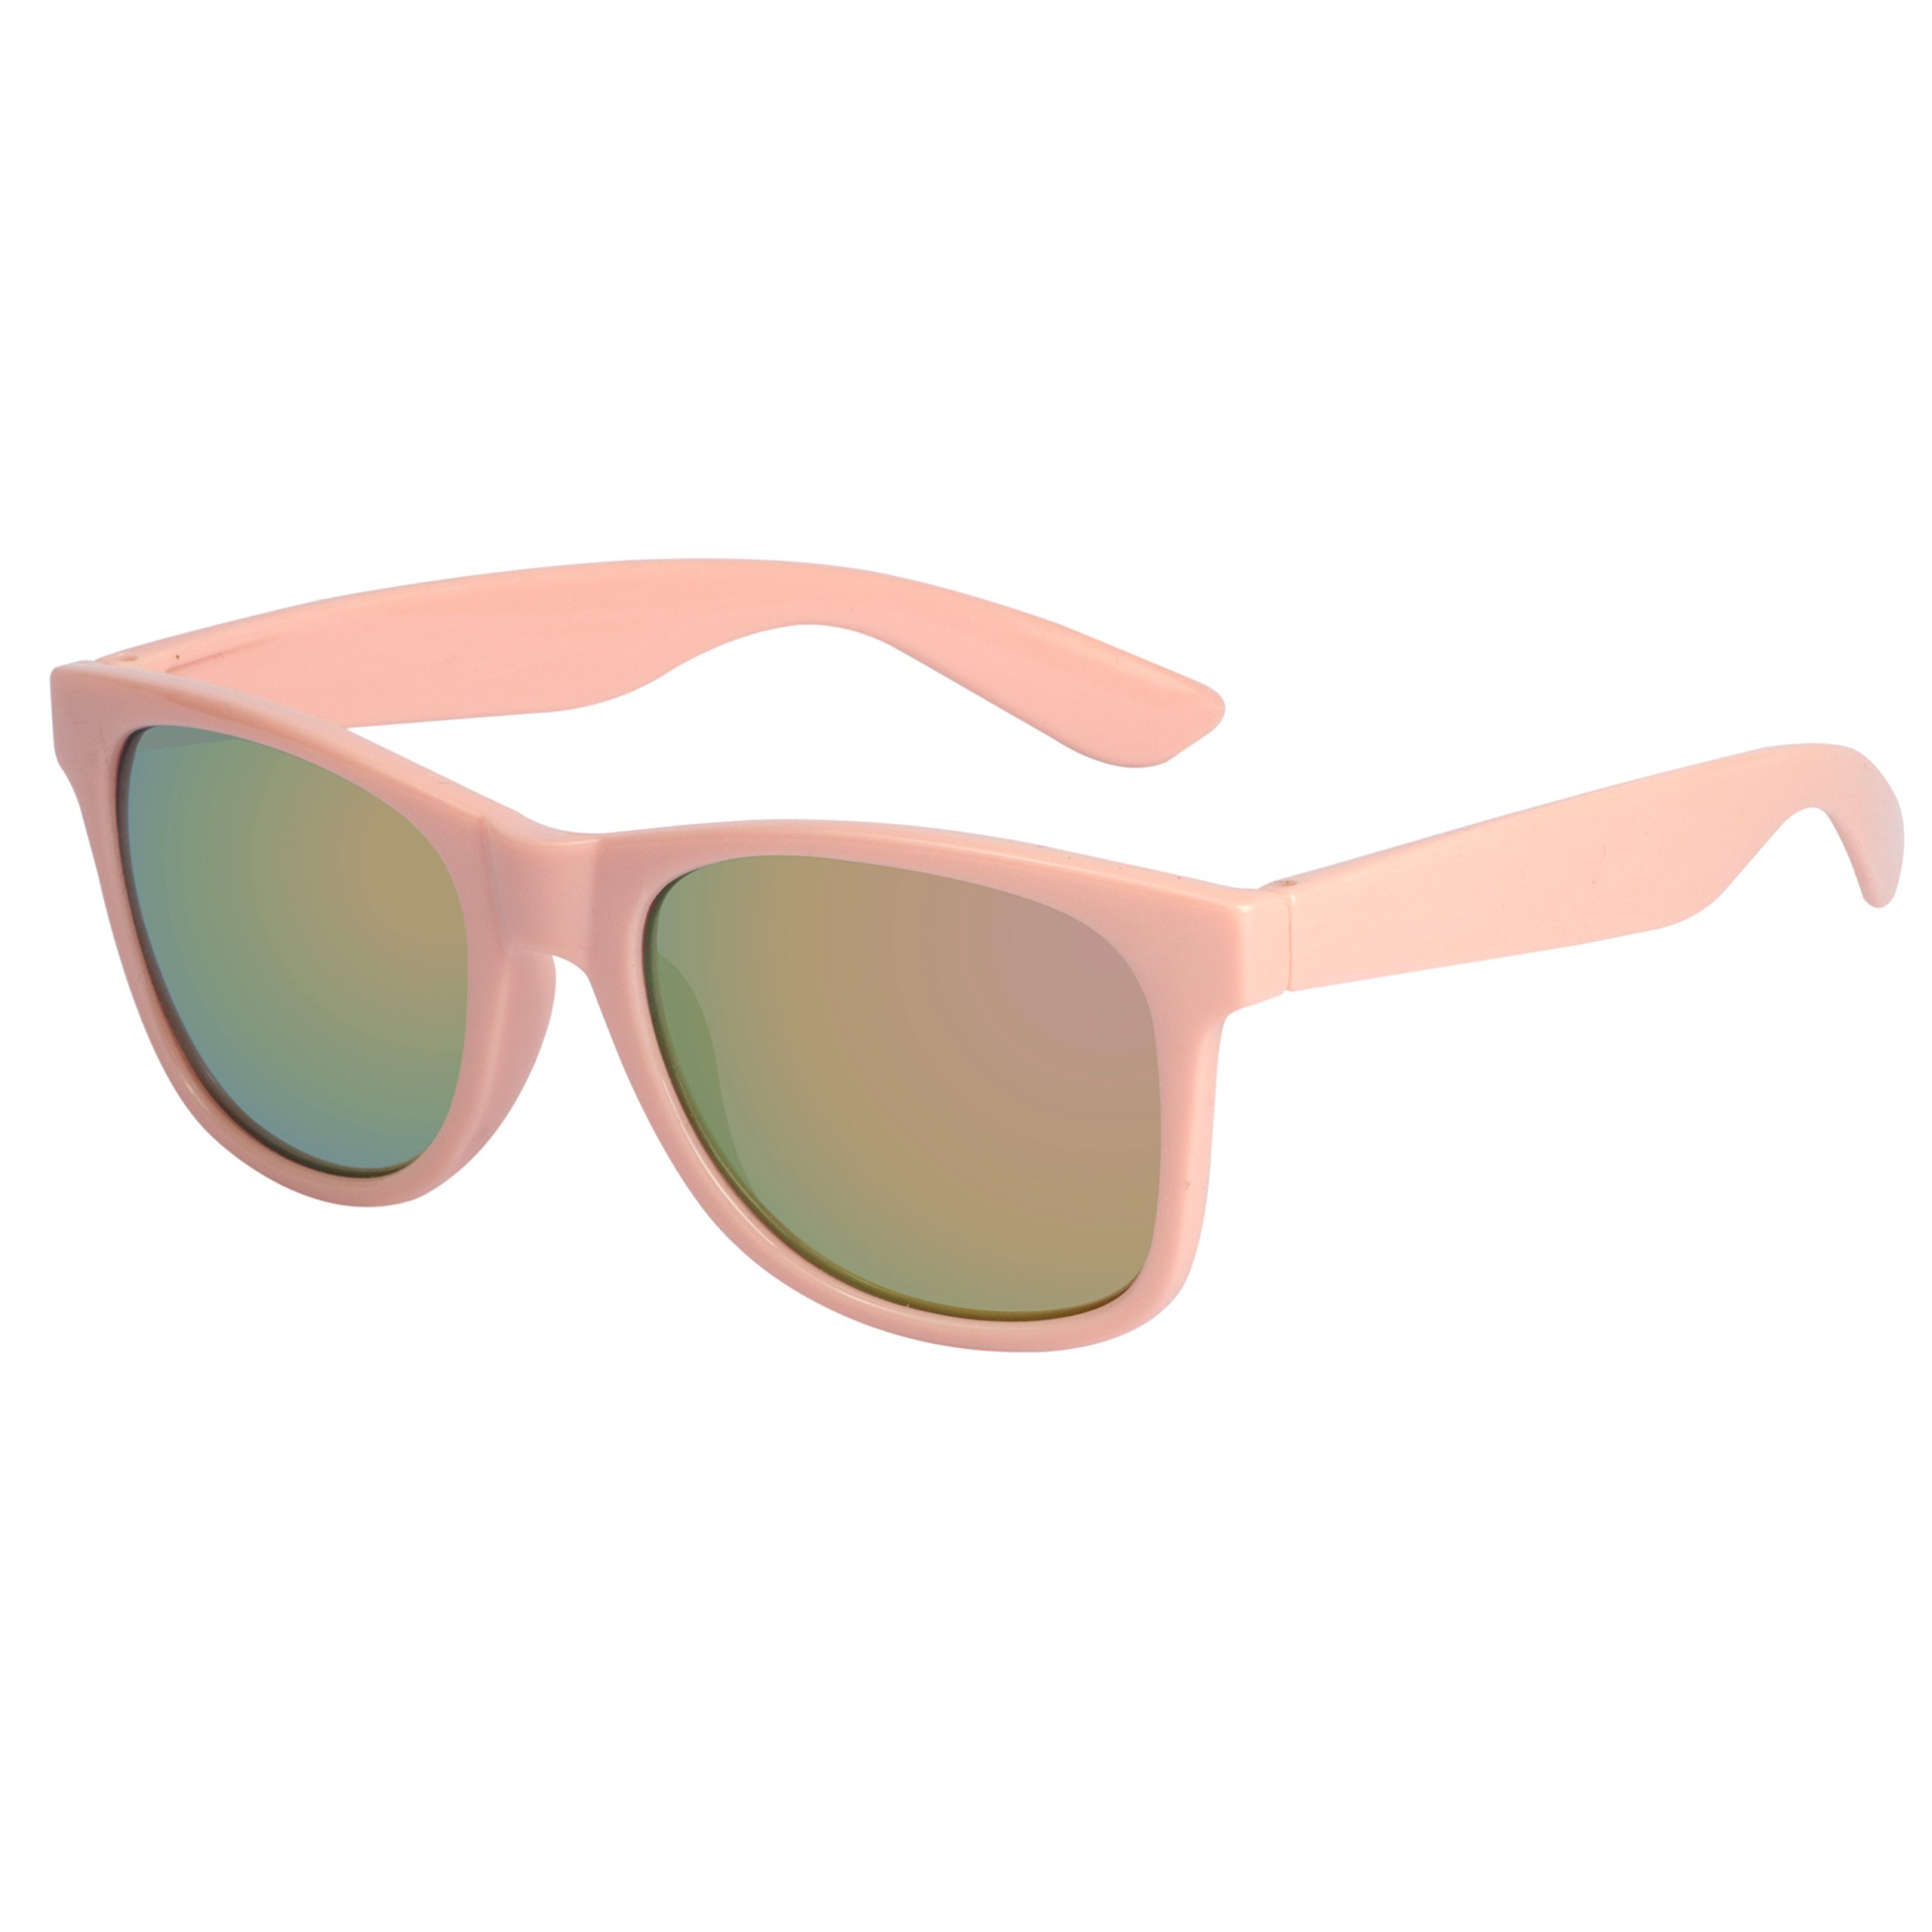 Family USA Flag Navigator Sunglasses with Mirror UV400 Lens for women men by COCOSAND